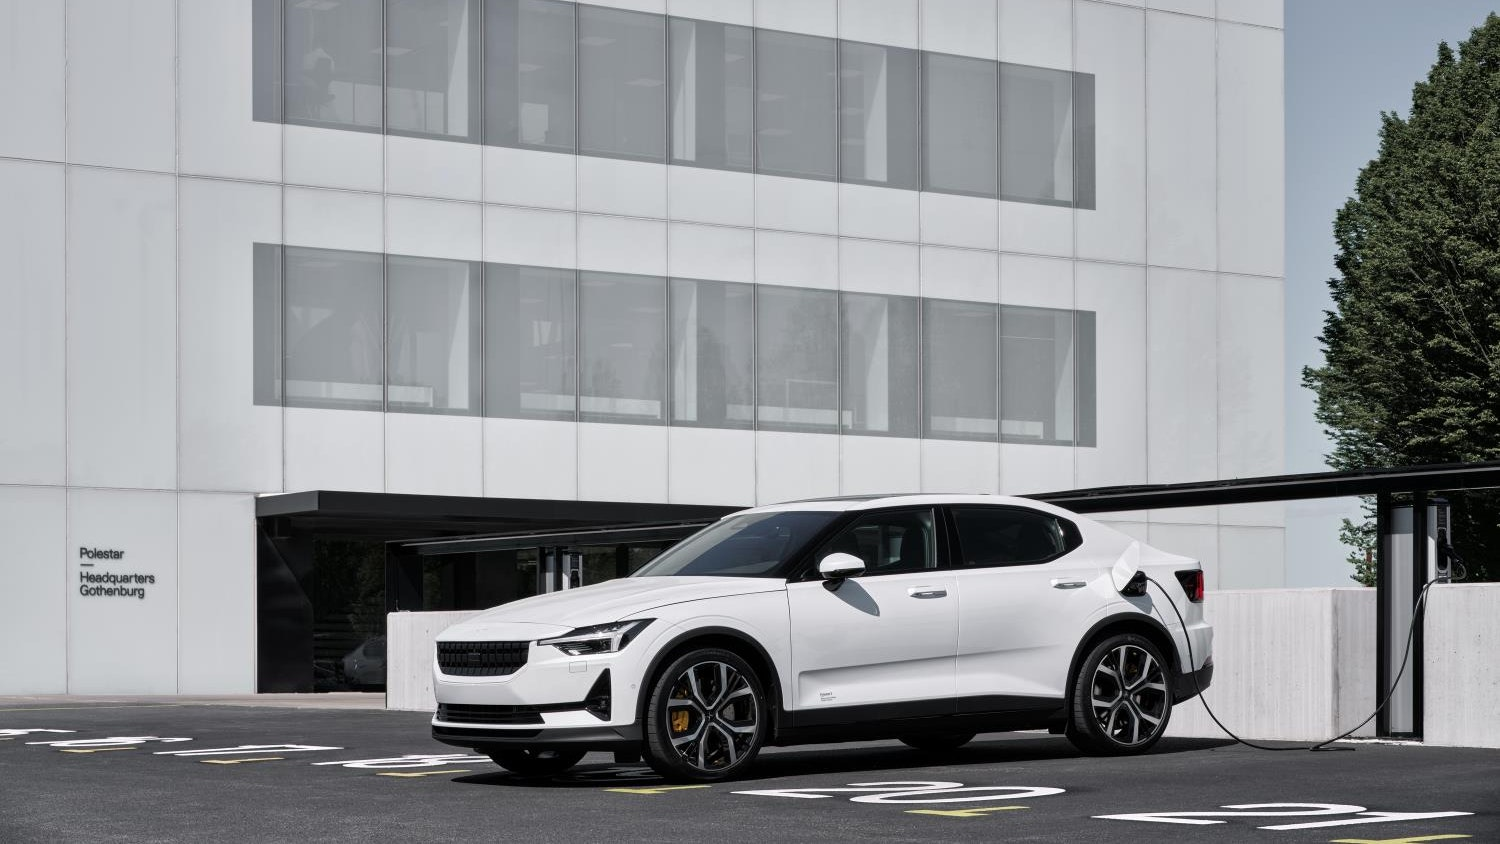 New Polestar partnership aims to simplify Europe-wide charging